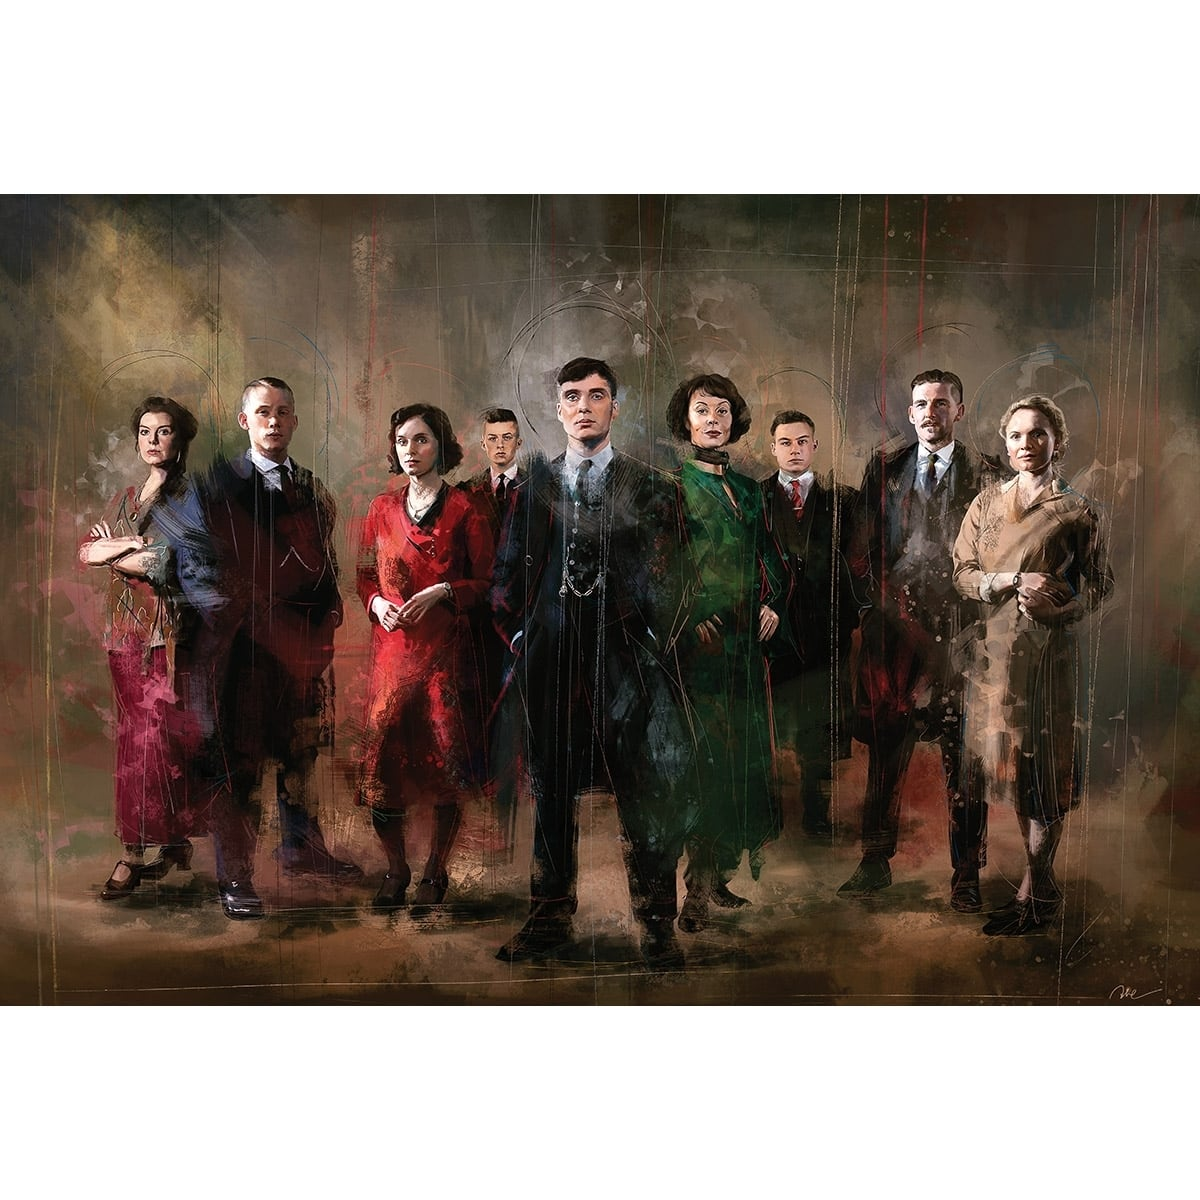 Peaky blinders family for a unique wall decoration